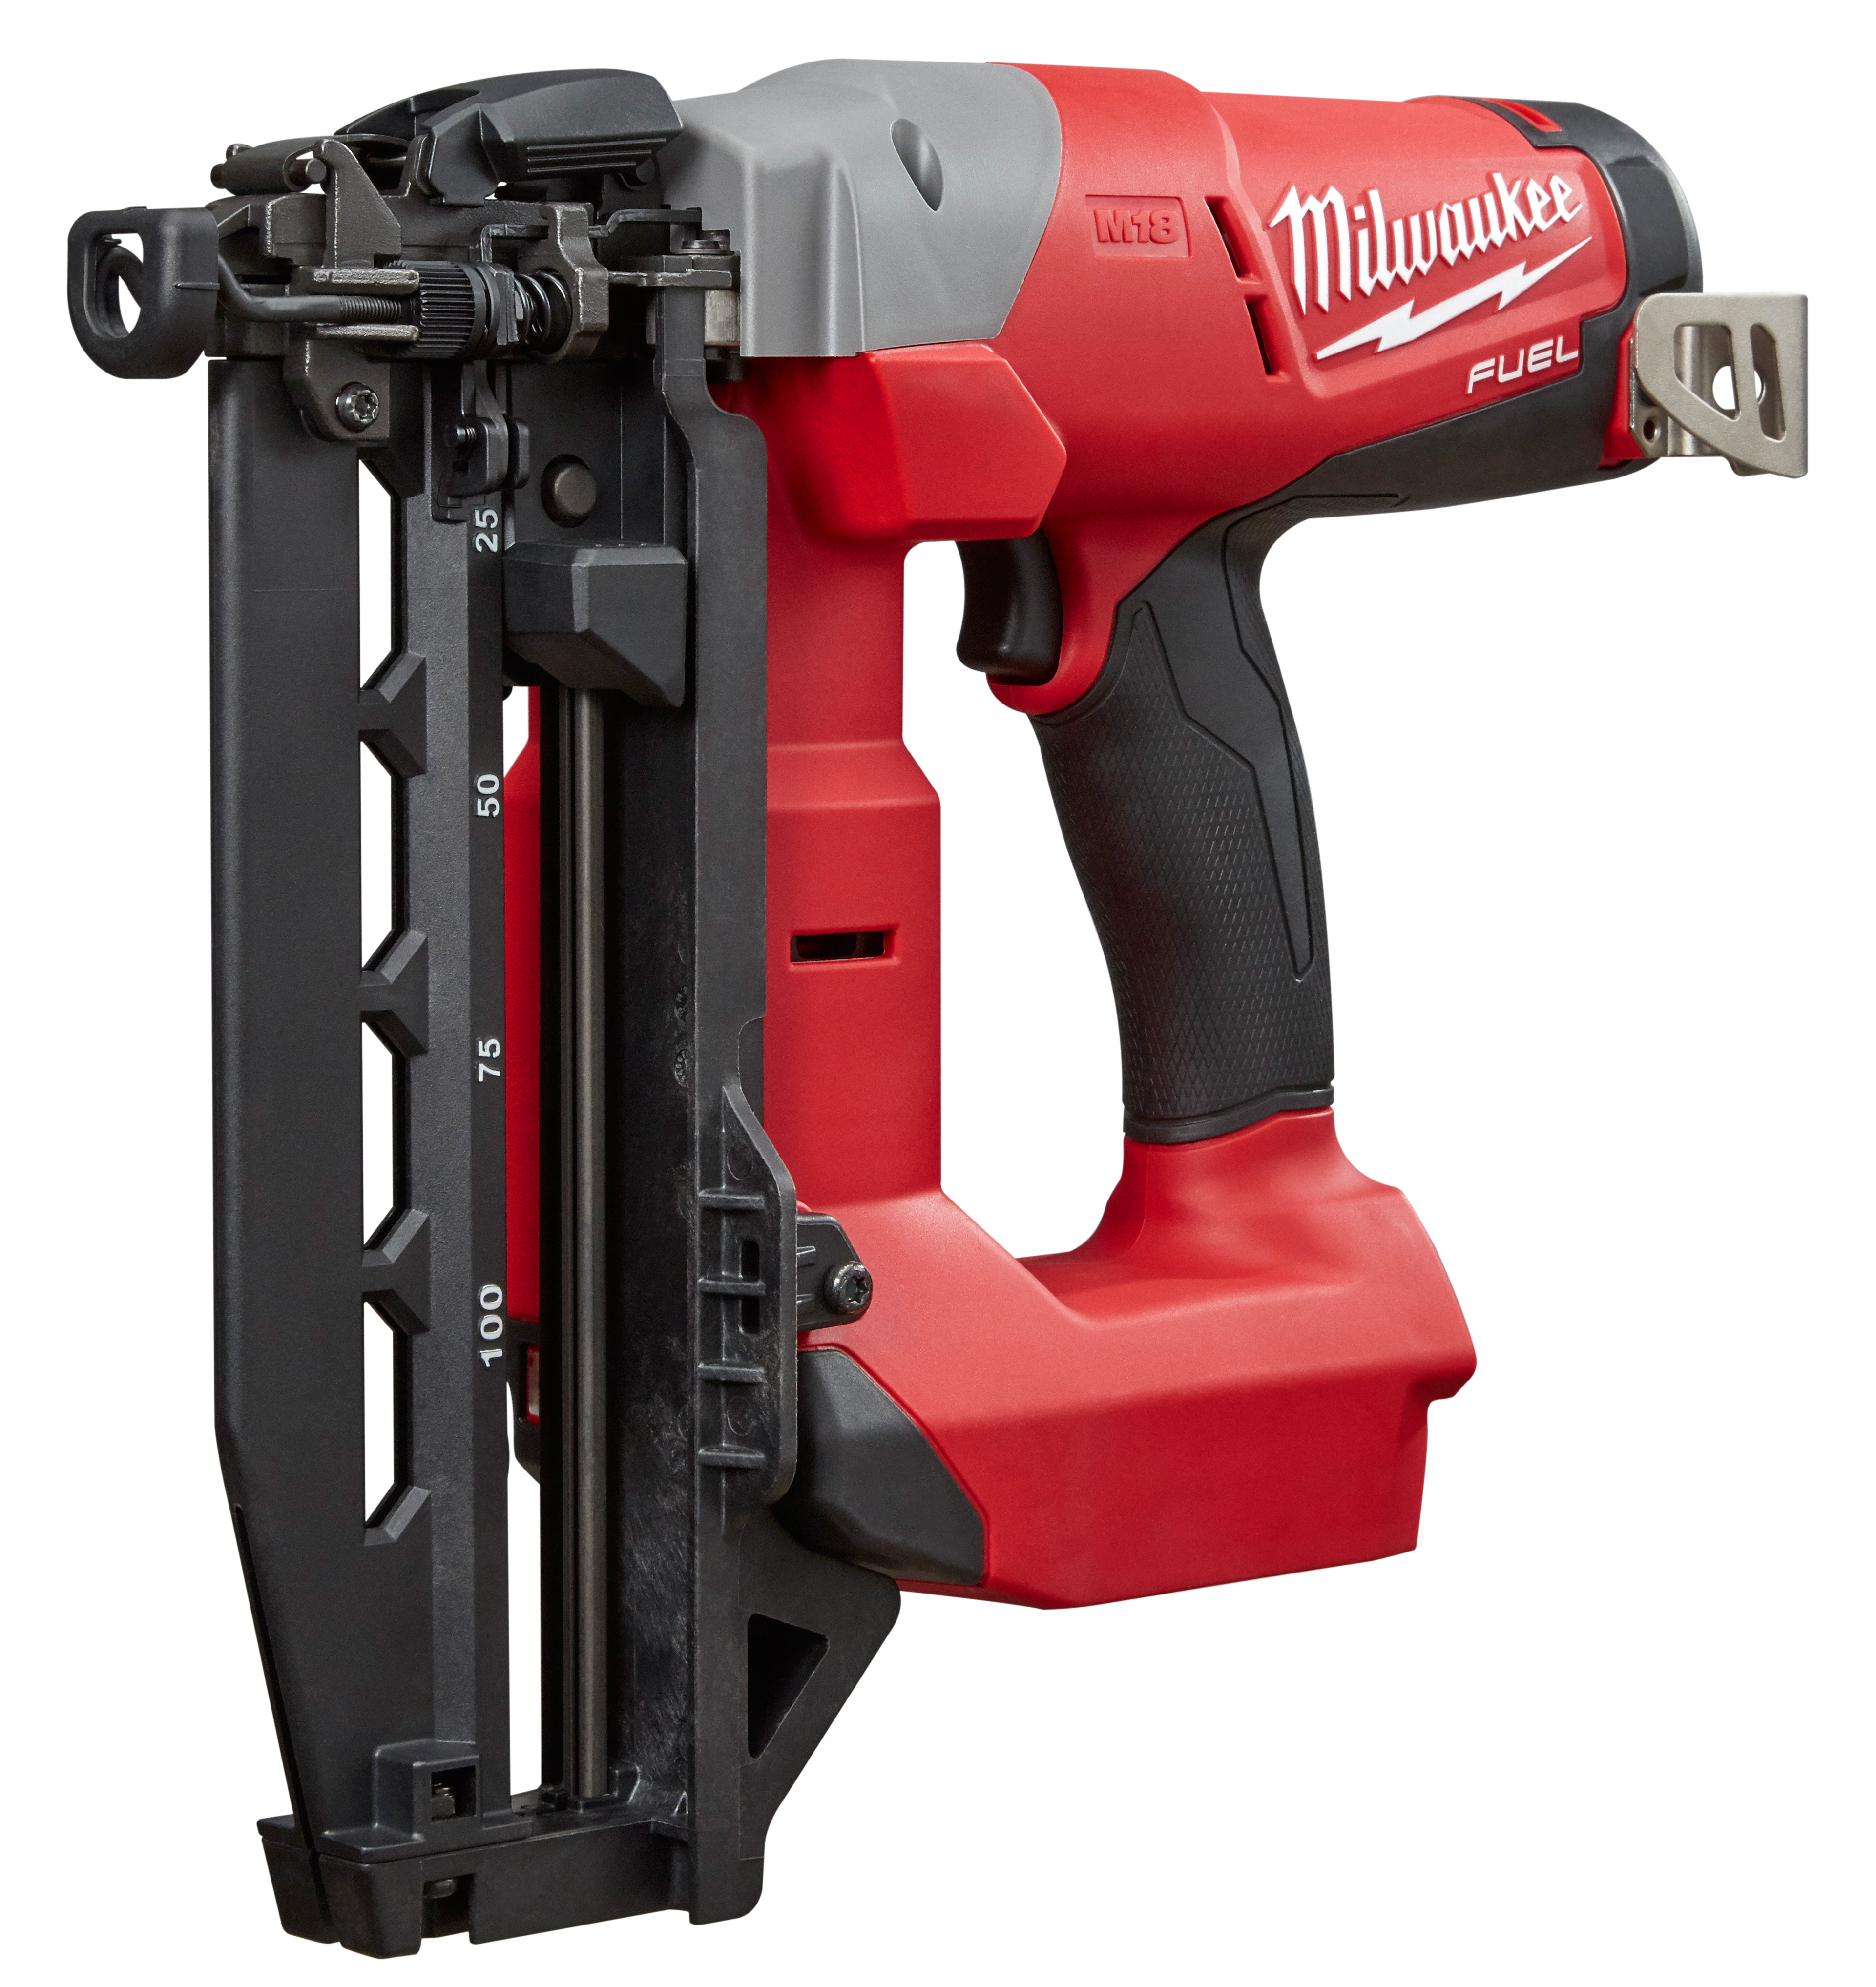 Milwaukee® M18™ FUEL™ 2741-20 16 ga Straight Finish Cordless Nailer, 3/4 to 2-1/2 in Fastener, 110 Nails Nails Magazine, 11-29/32 in OAL, Battery